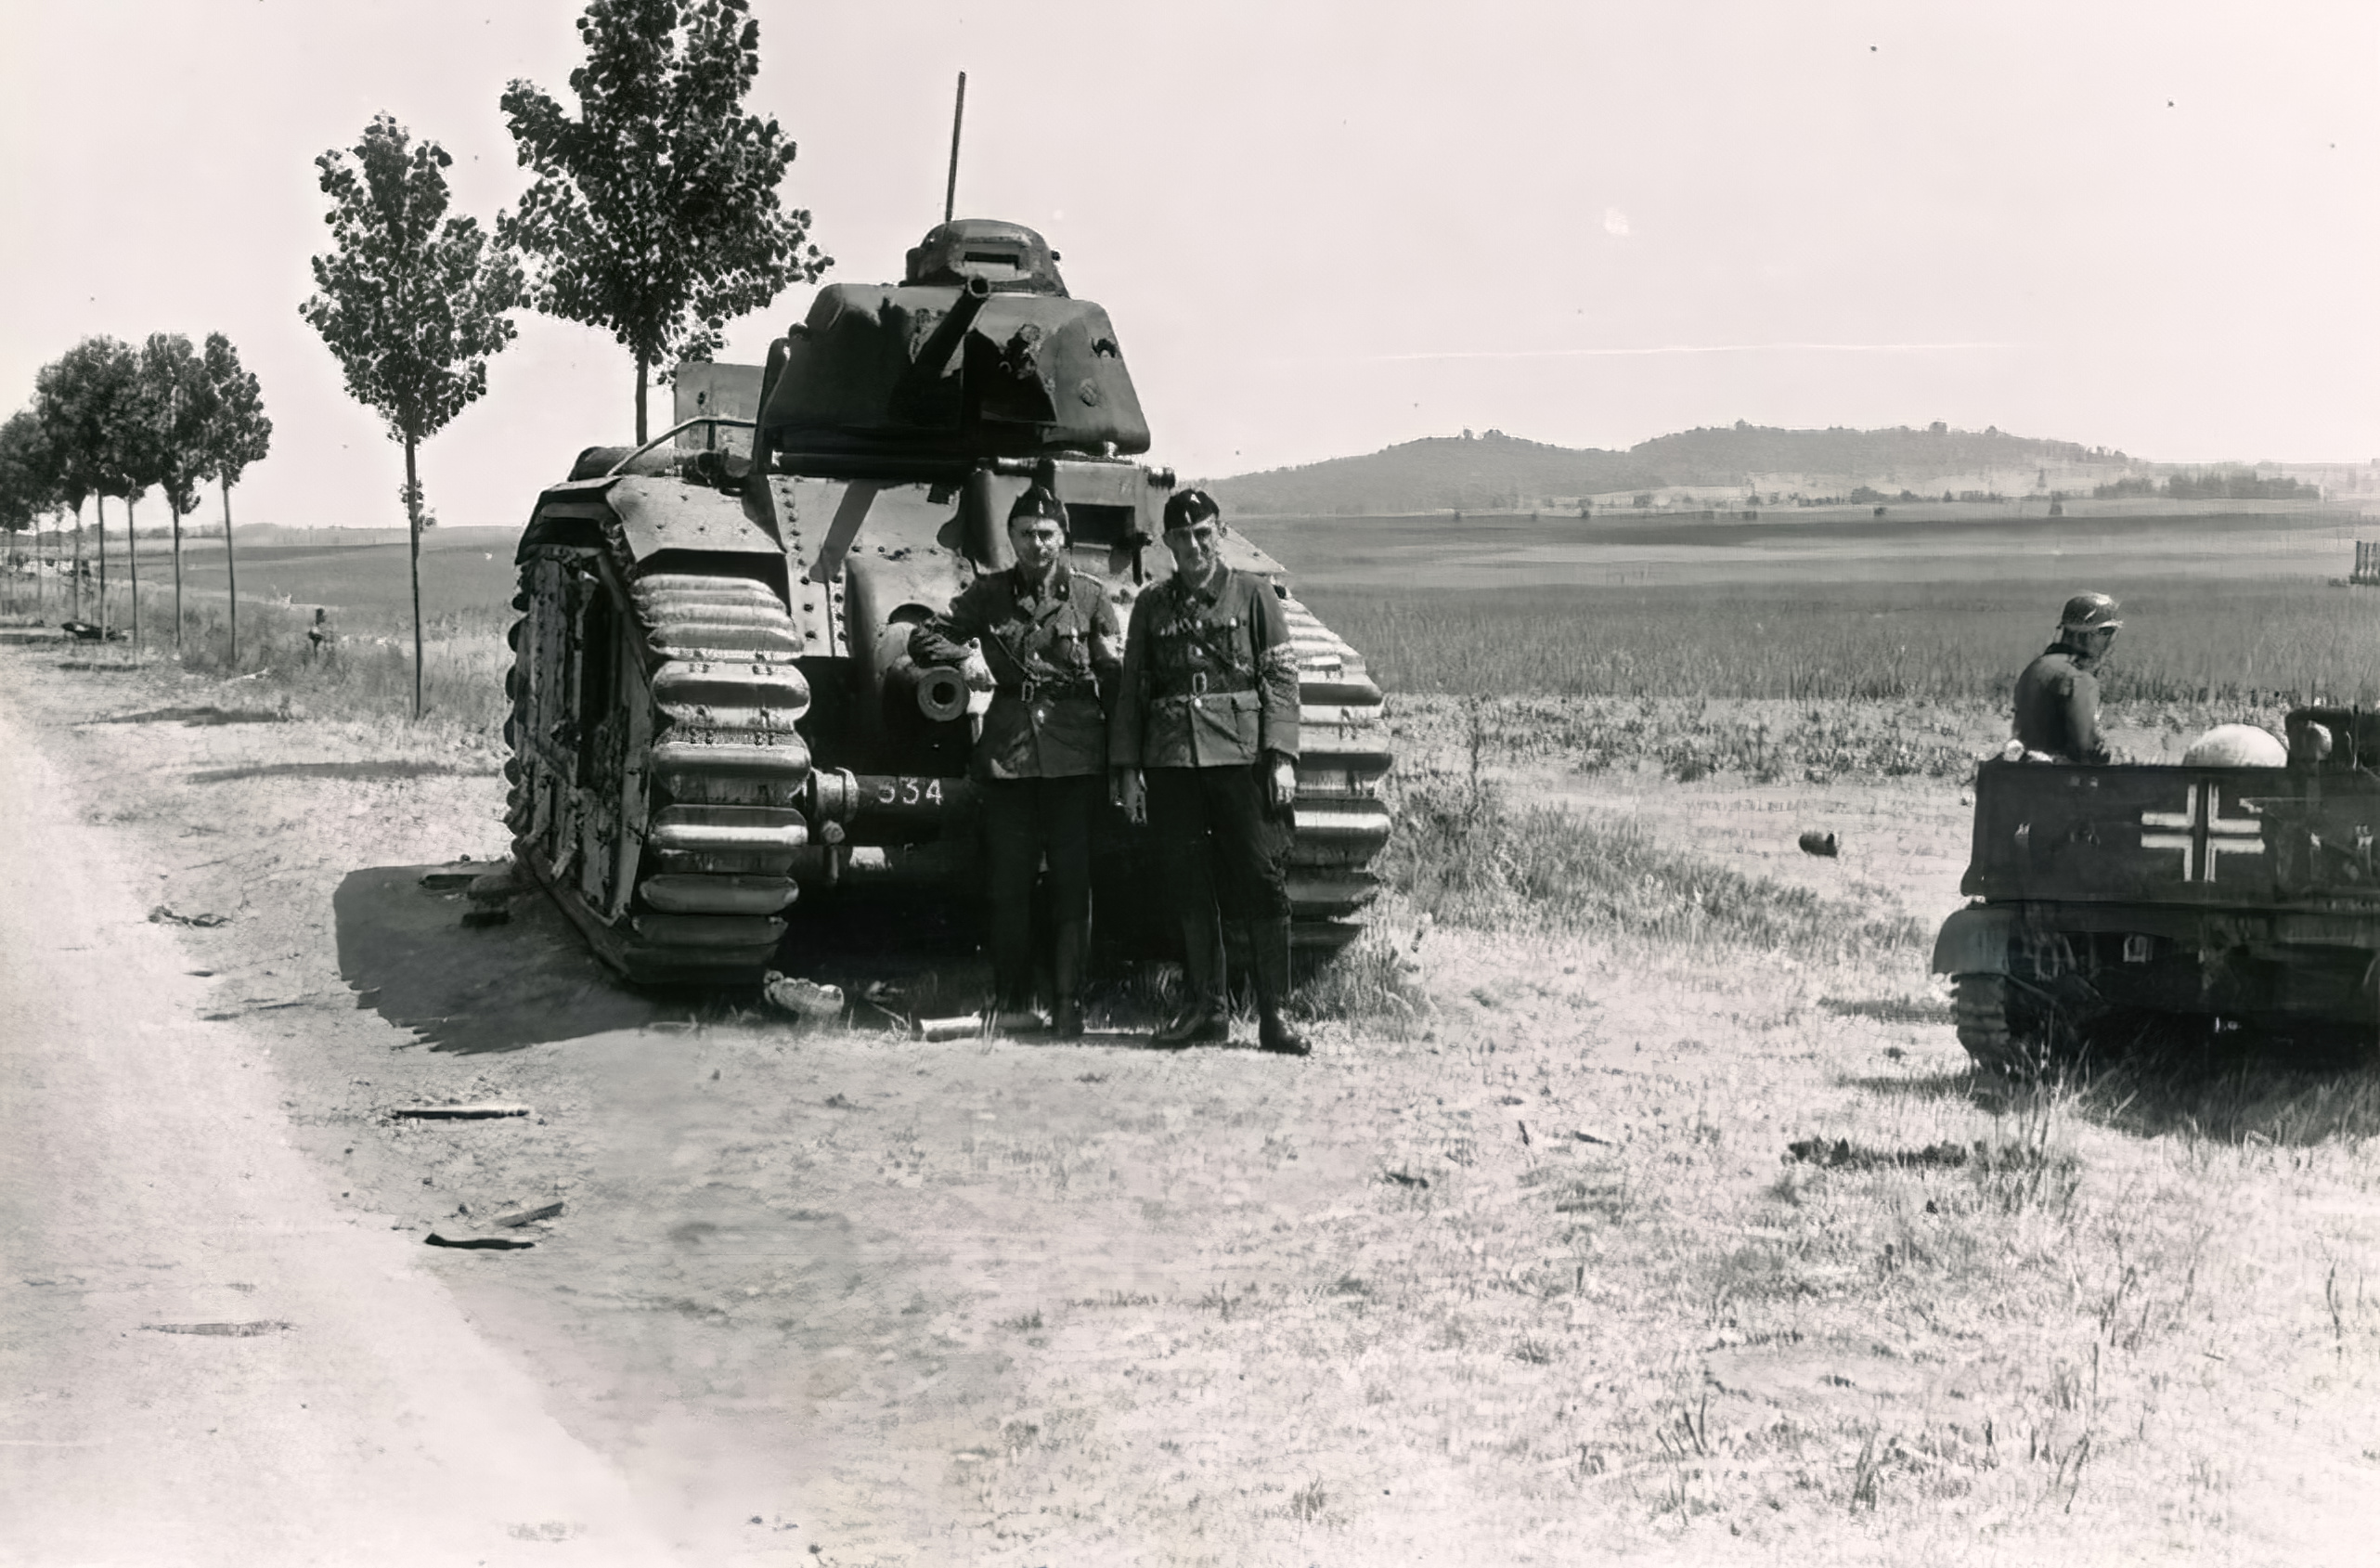 French Army Renault Char B1 captured during the battle of France 1940 ebay 02